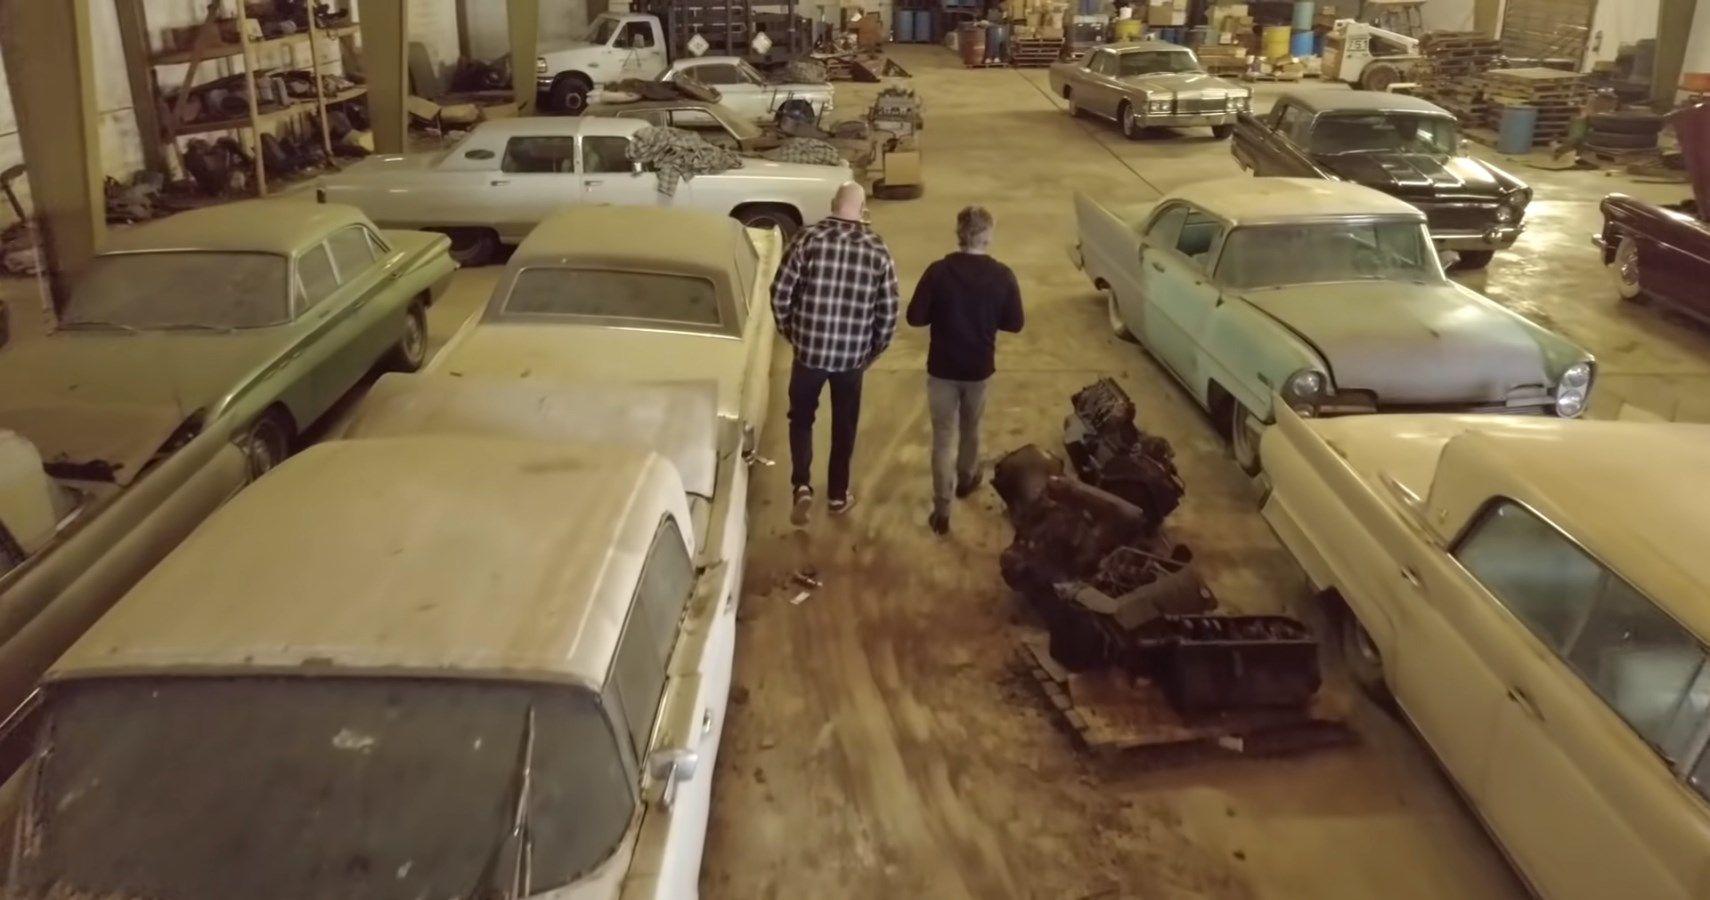 Richard Rawlings checks out a garage with more than 35 cars that have been unmoved for 40 years.